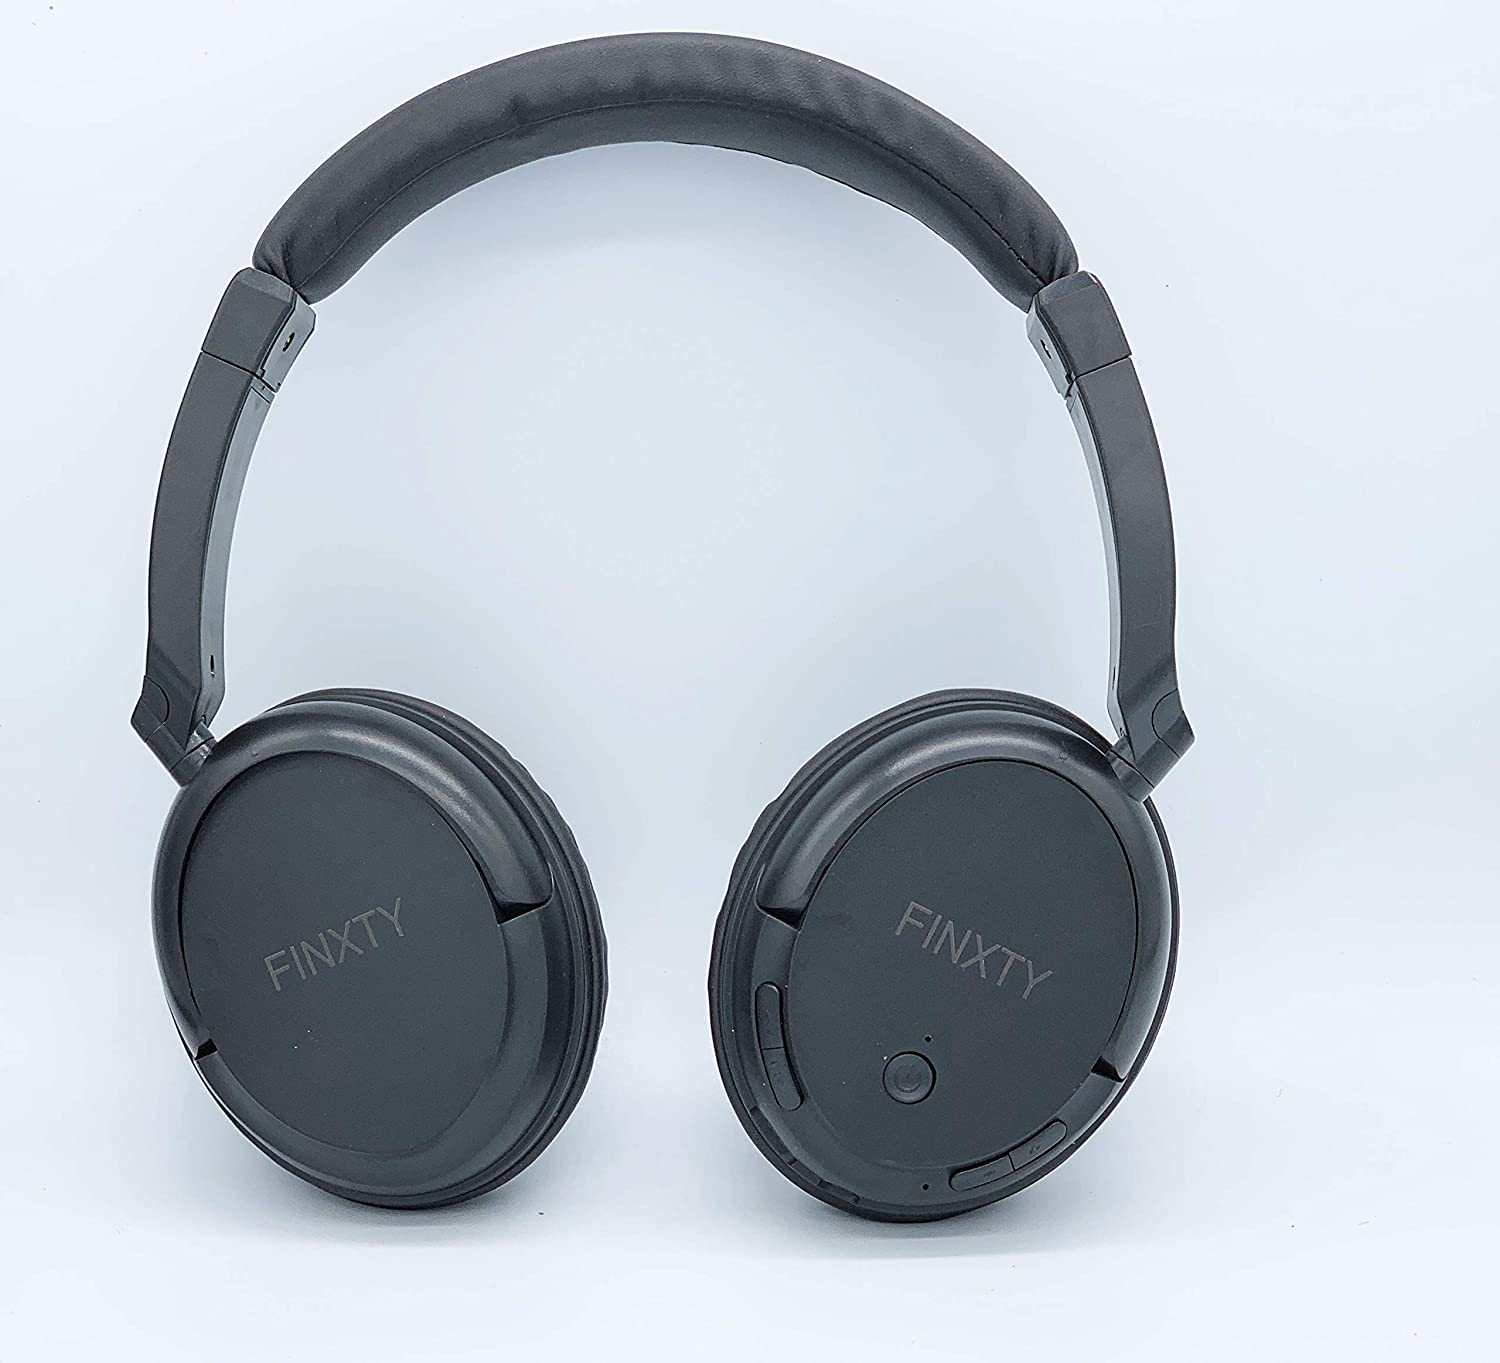 FINXTY Foldable Bluetooth Stereo Headphones Durable Over Ear Headphones with Soft Protein Ear Pads & 24 Hour Play time Noise Cancelling Mic Wireless Headphones